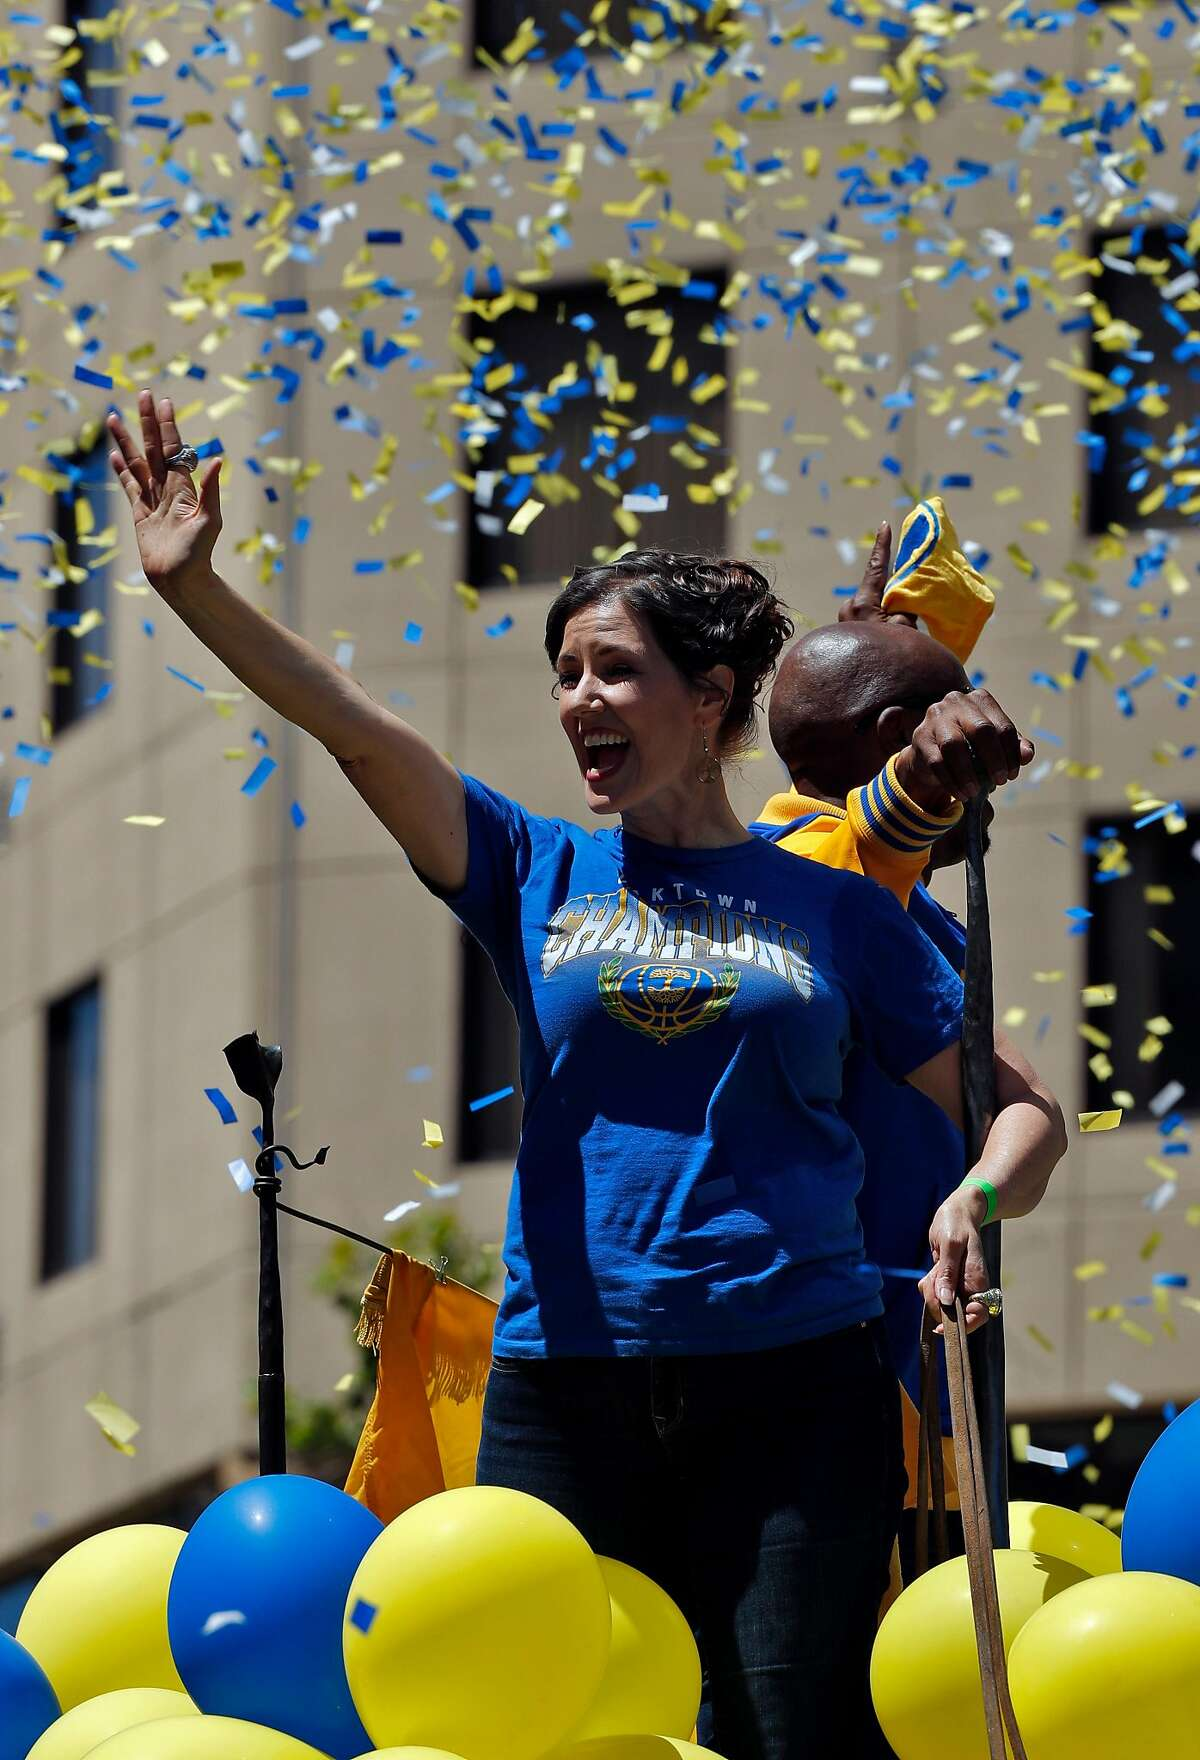 Oakland Mayor Libby Schaaf and MC Hammer take part in the Golden State Warriors NBA Championship parade in Oakland, Calif., on Tuesday, June 12, 2018.